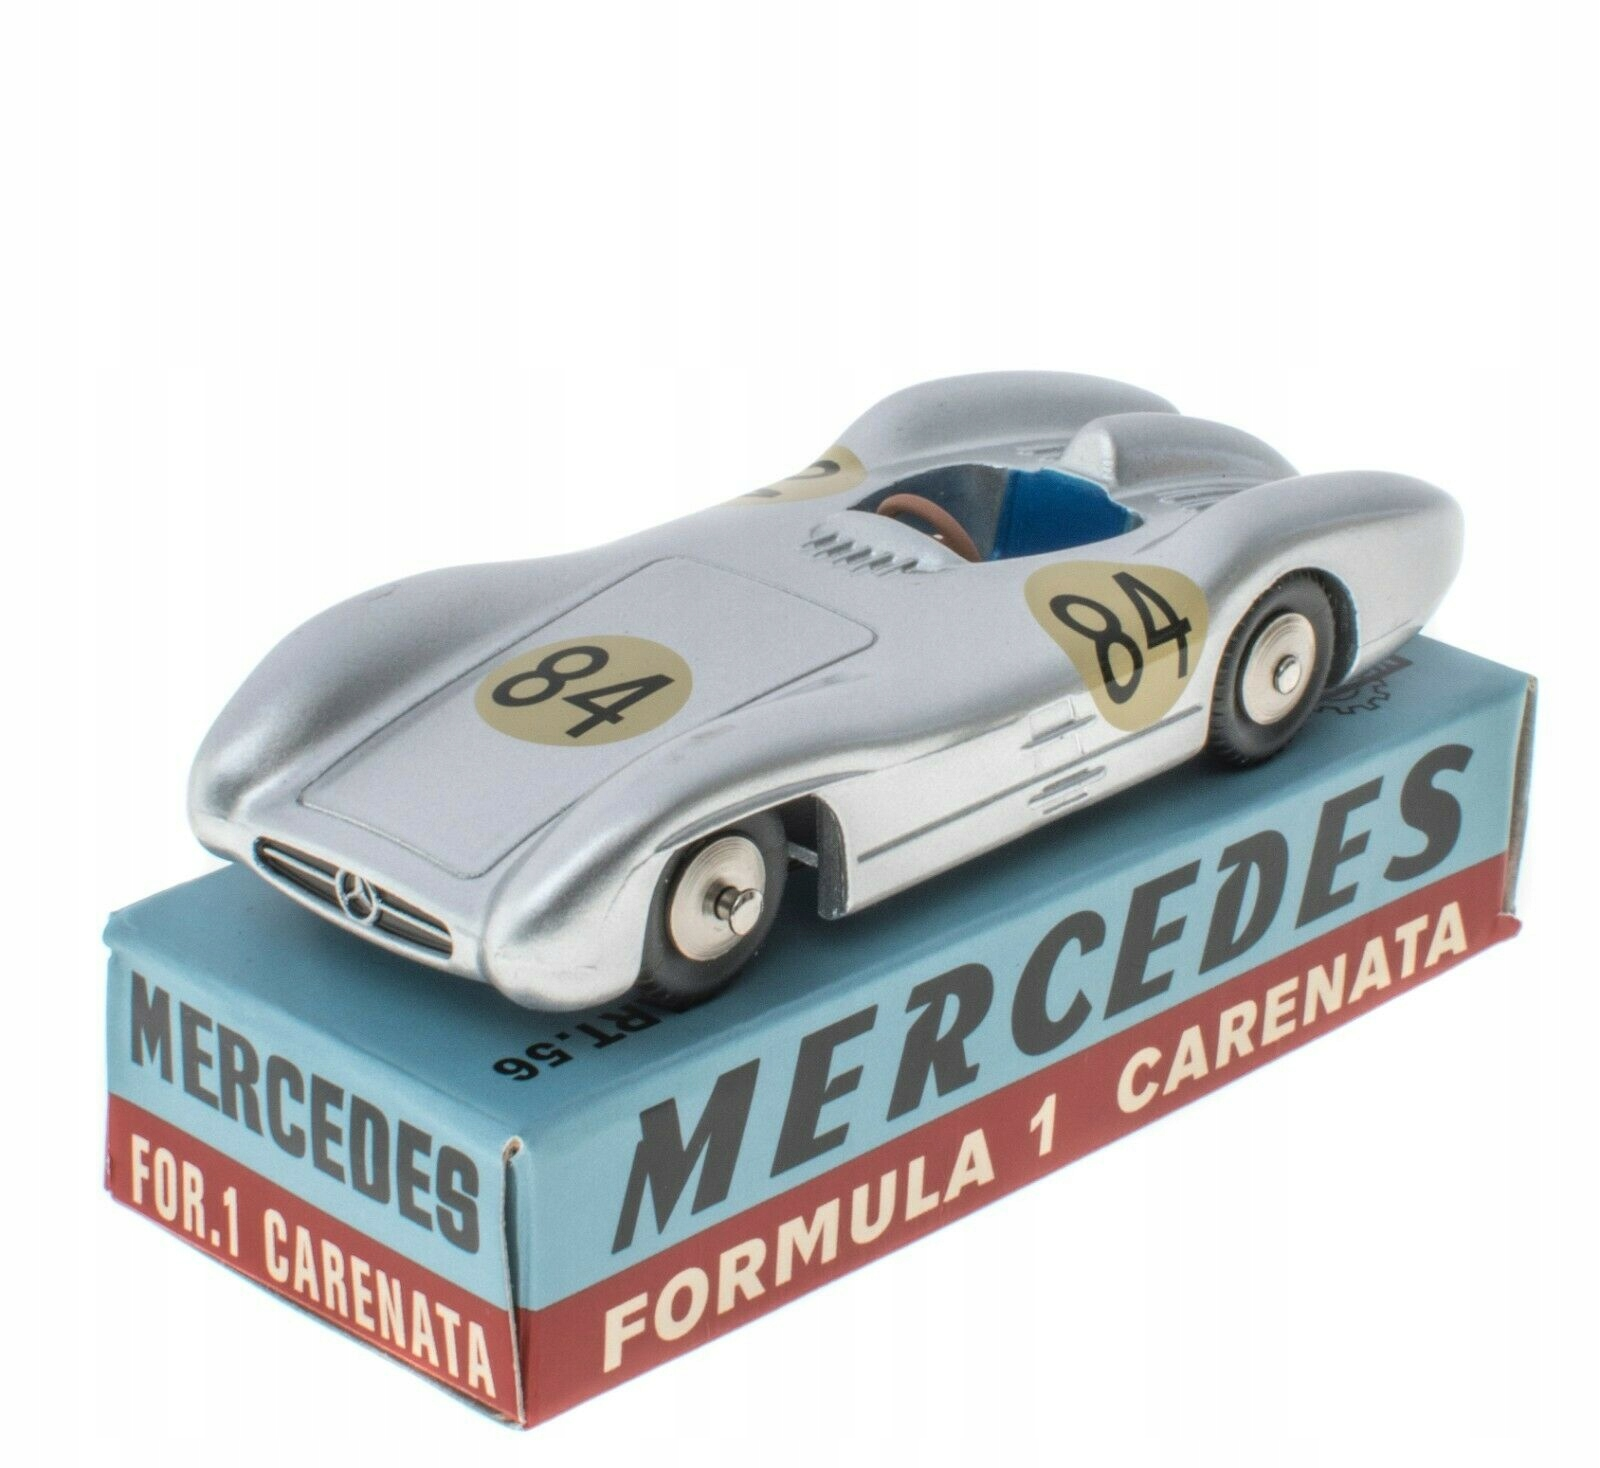 Мерседес F1 Carenata Mercury Hachette 1:48